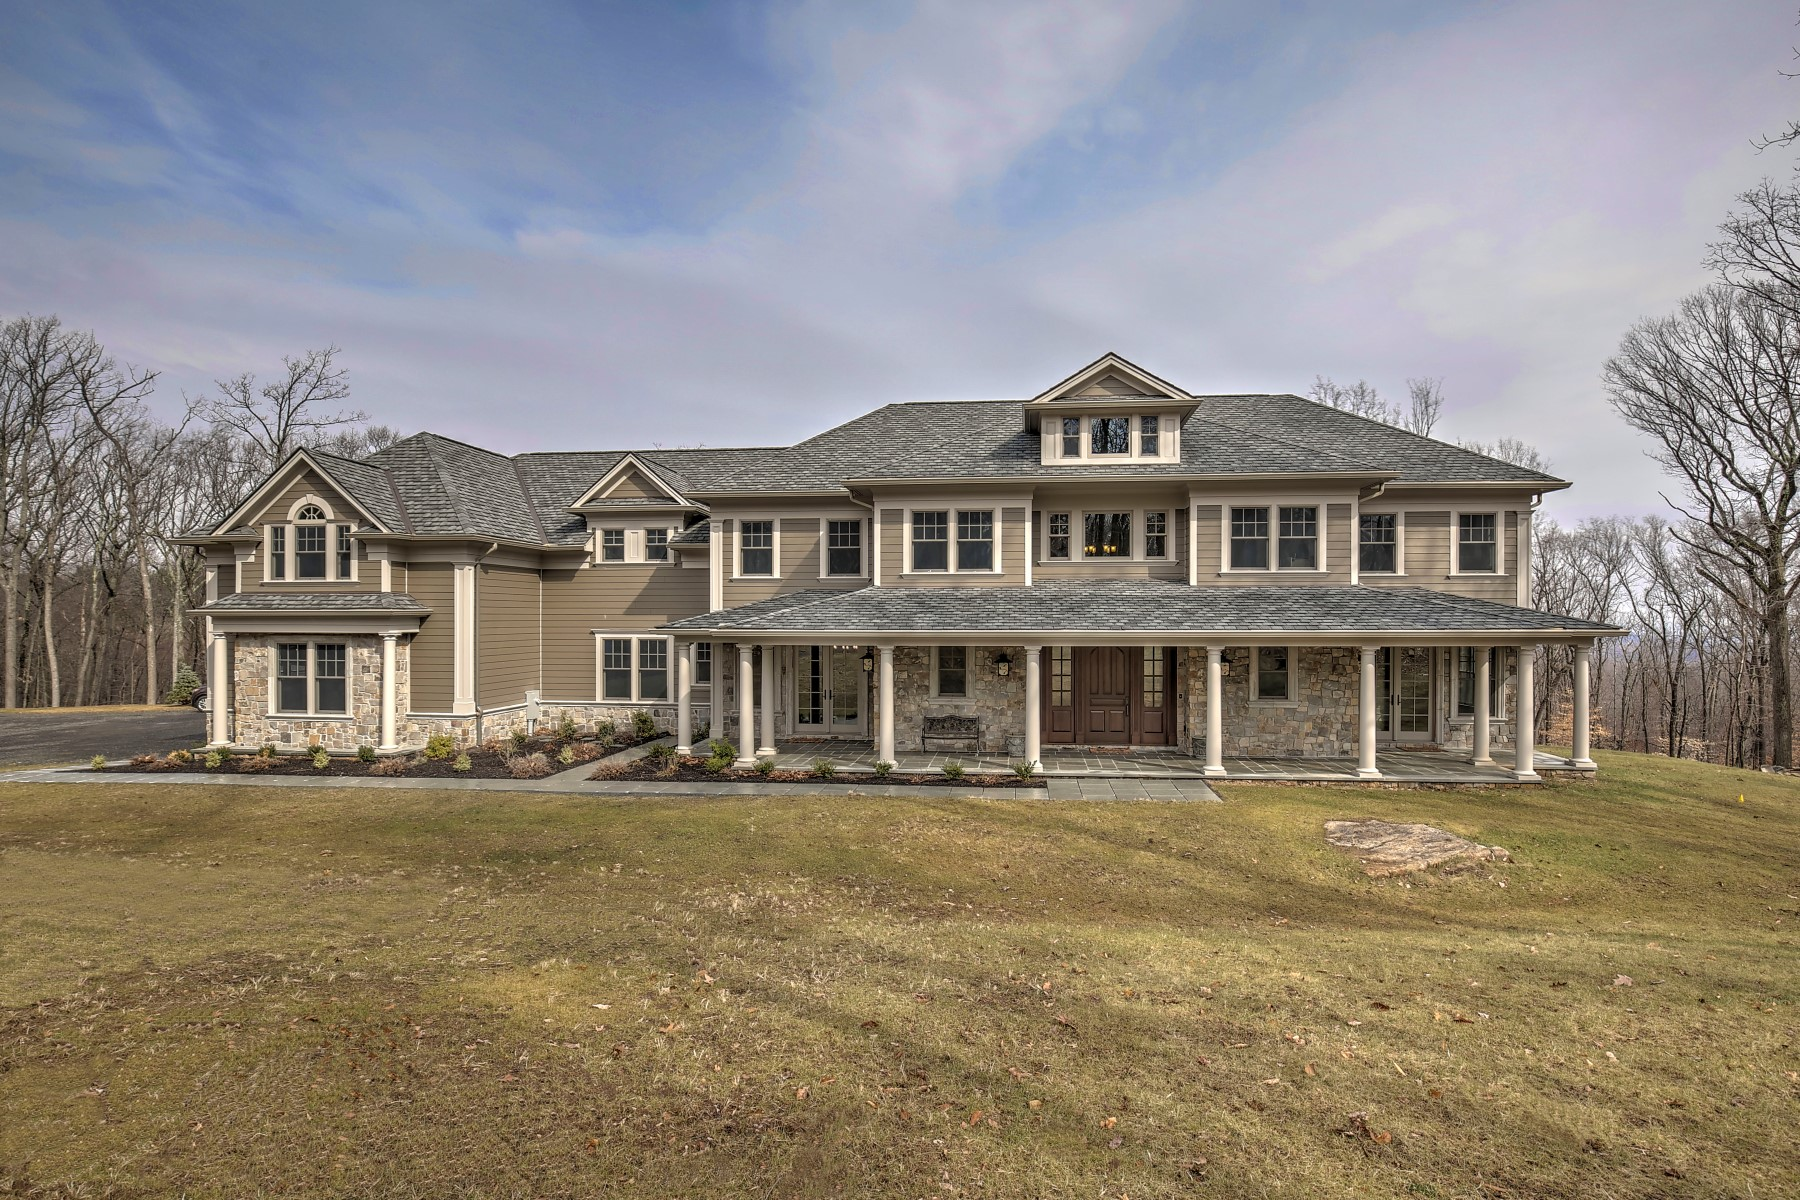 Single Family Home for Sale at Bernardsville Mountain New Construction 111 Boulderwood Drive Bernardsville, 07924 United States